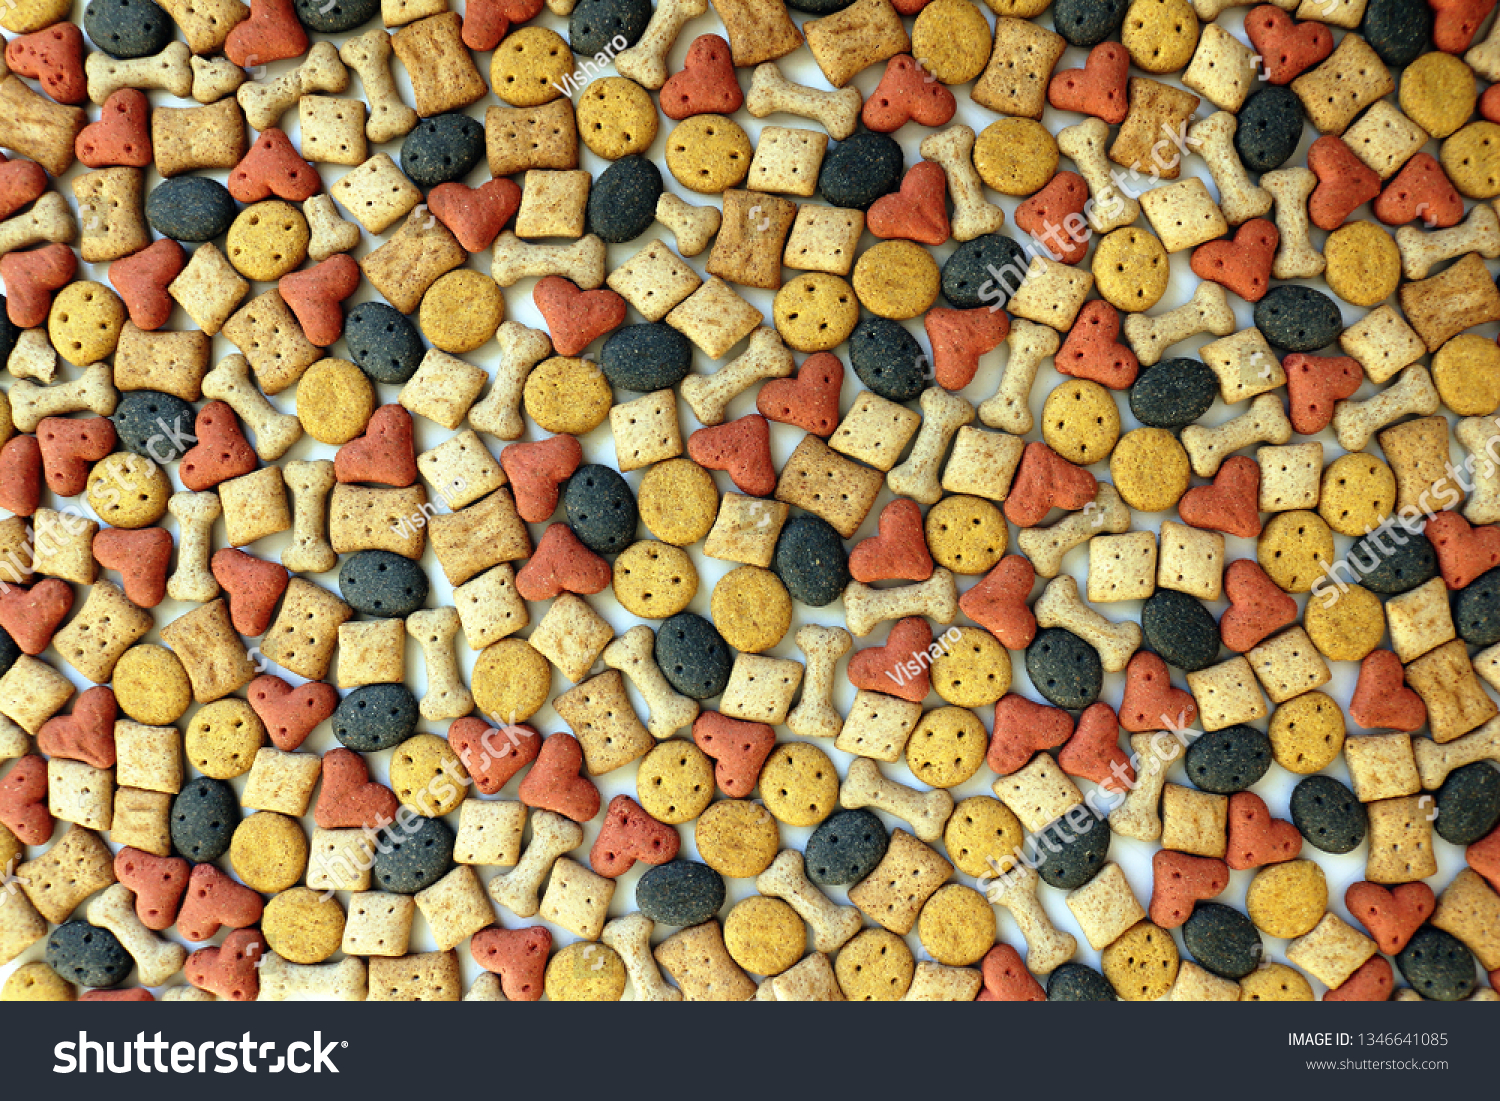 Background Texture of Various Dog Biscuits #1346641085